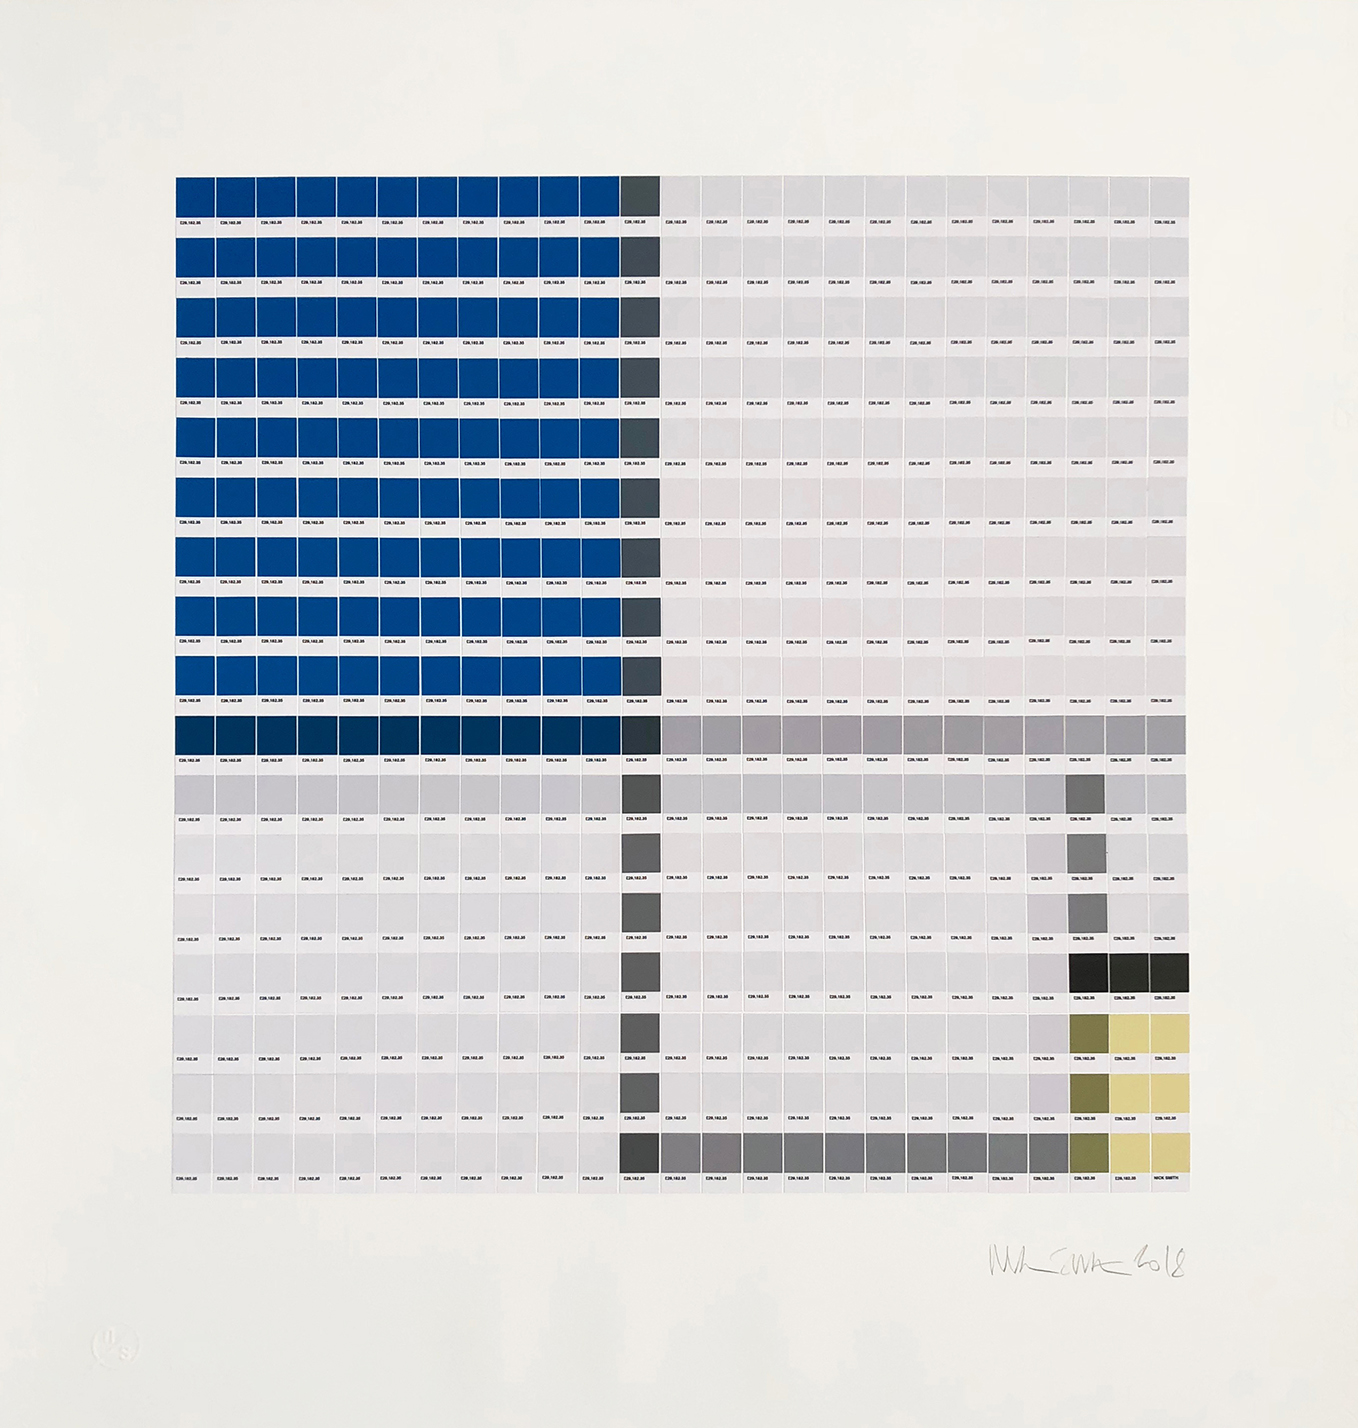 Mondrian - Composition No. II